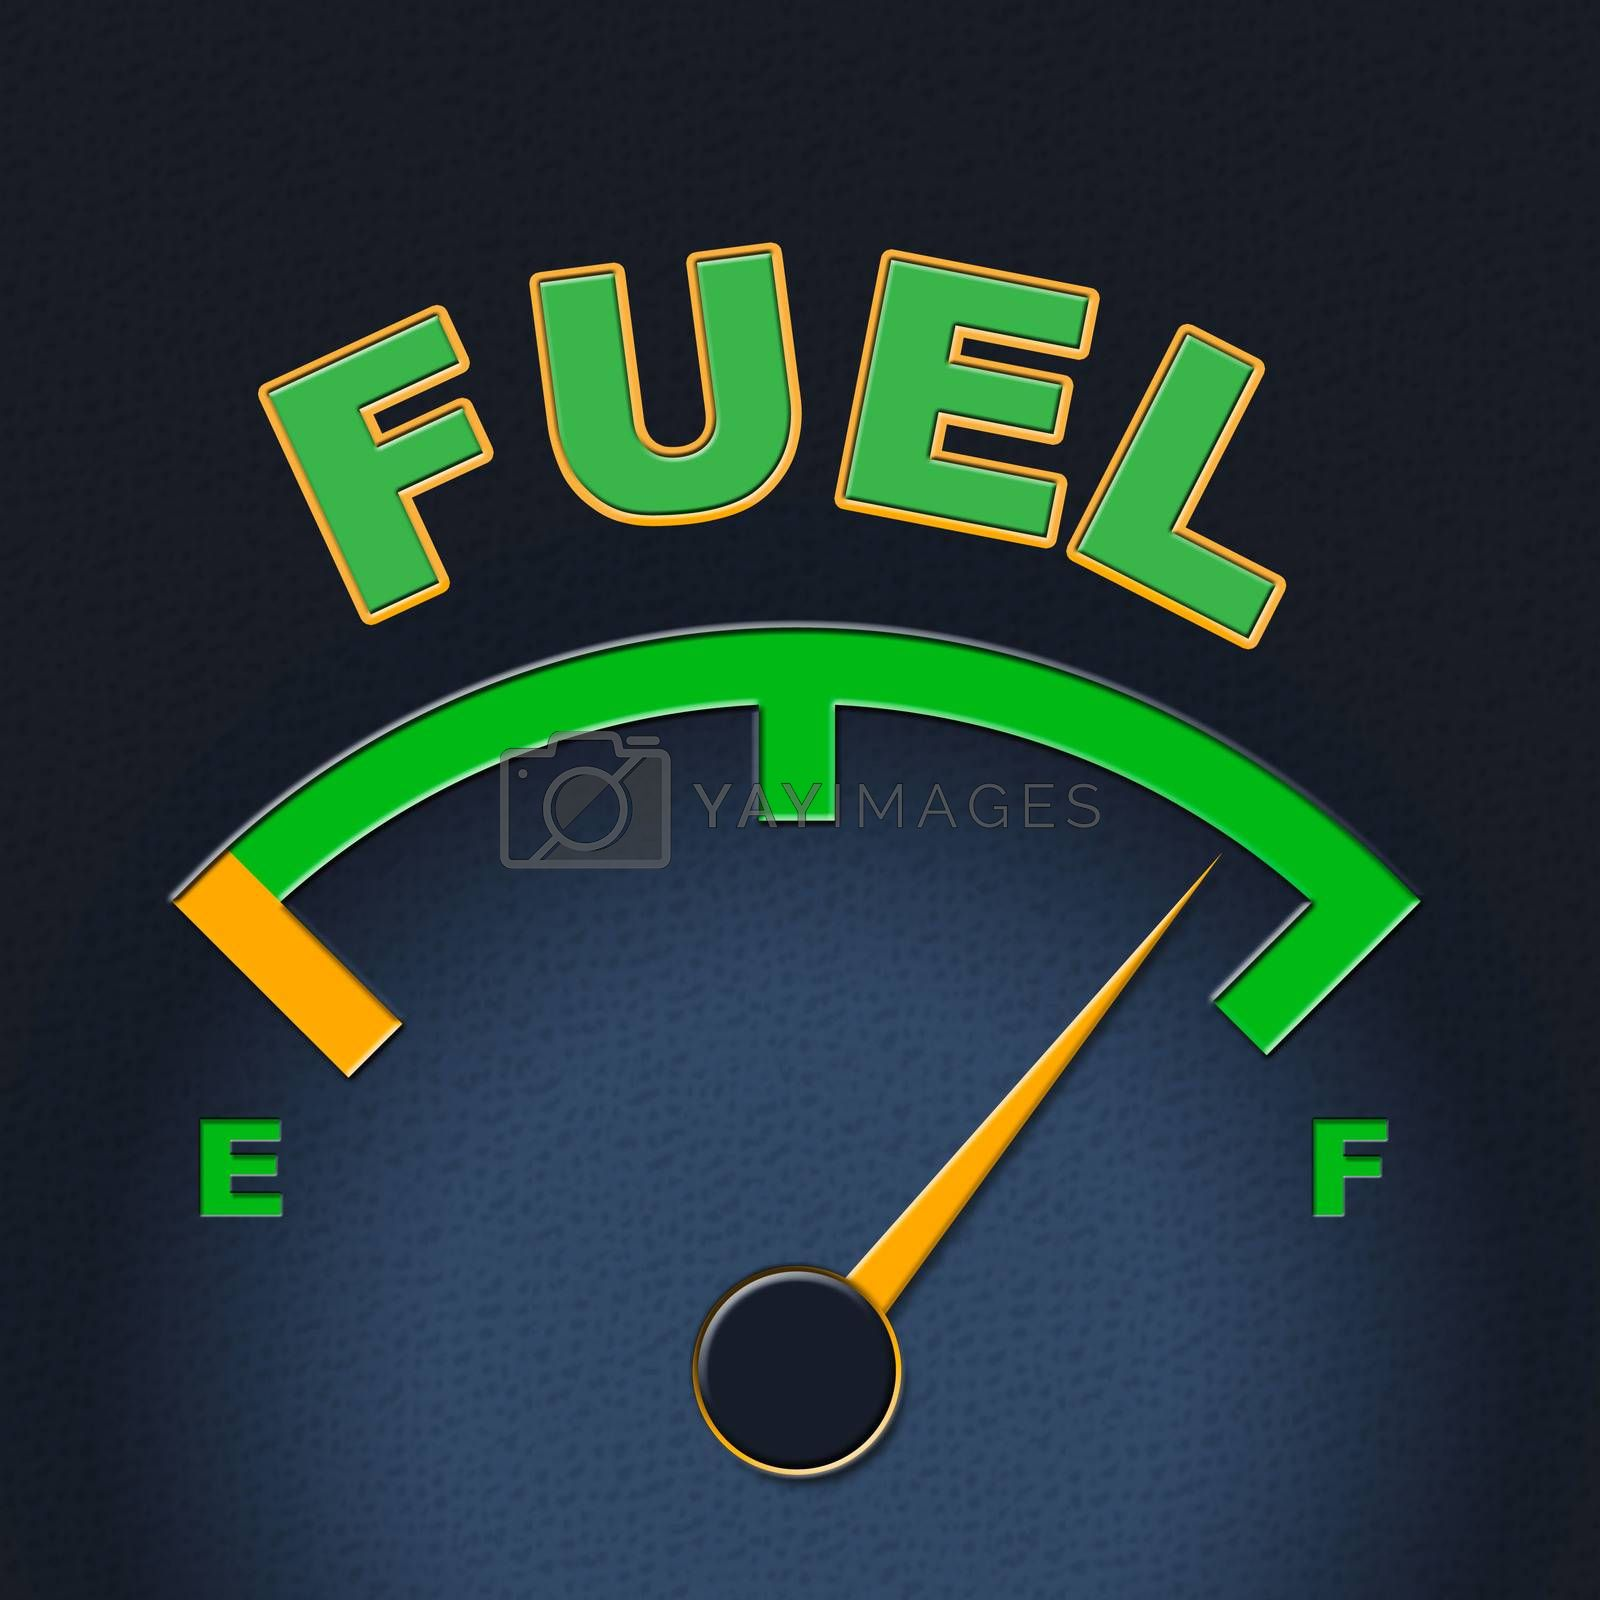 Fuel Gauge Represents Power Source And Dial by stuartmiles